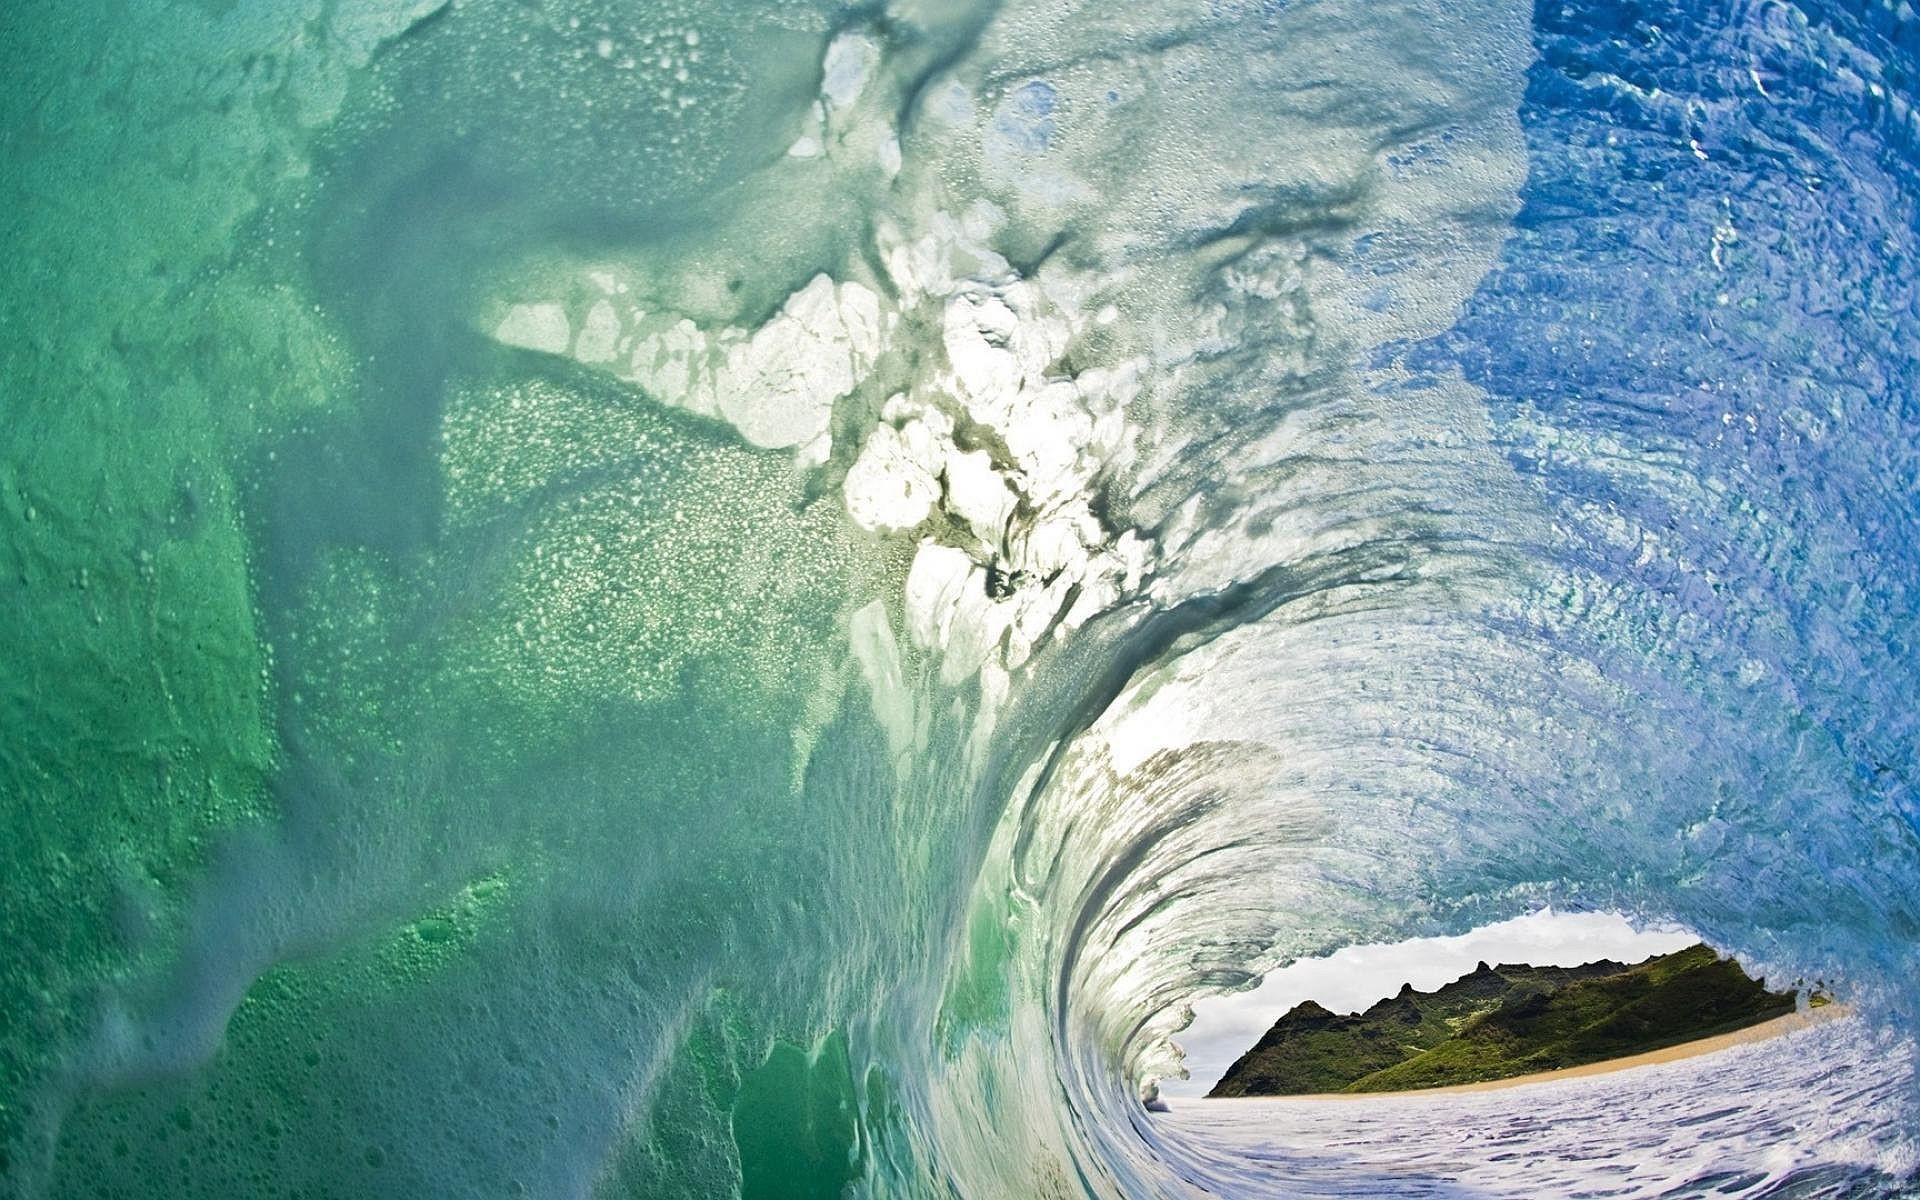 1920x1200 ocean wave images - Google Search